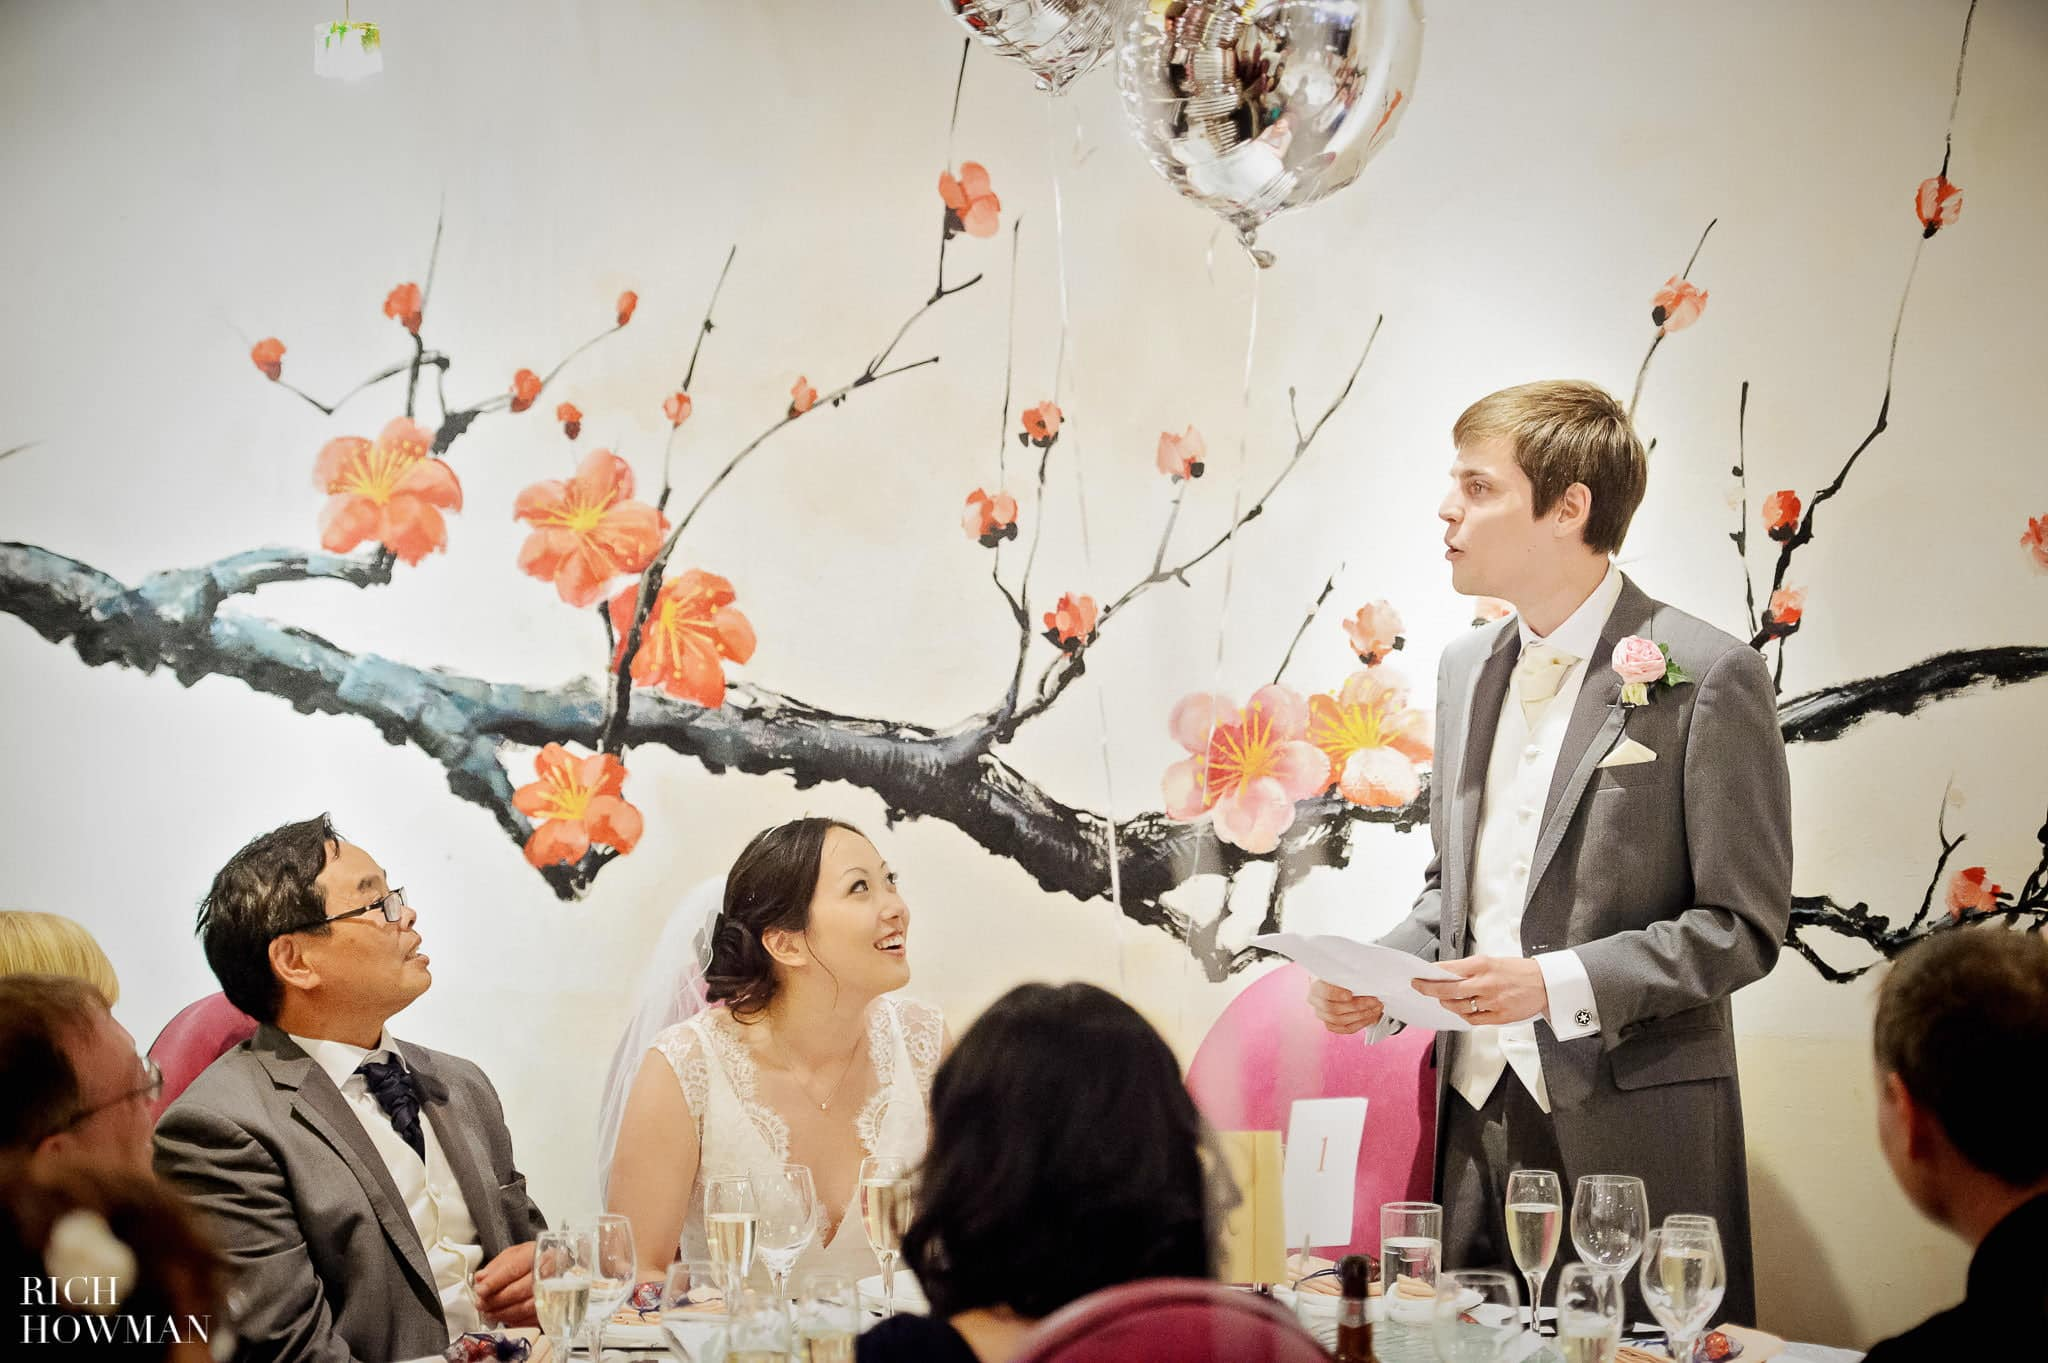 Notting Hill Wedding | Wedding Photographer London - Rich Howman 46